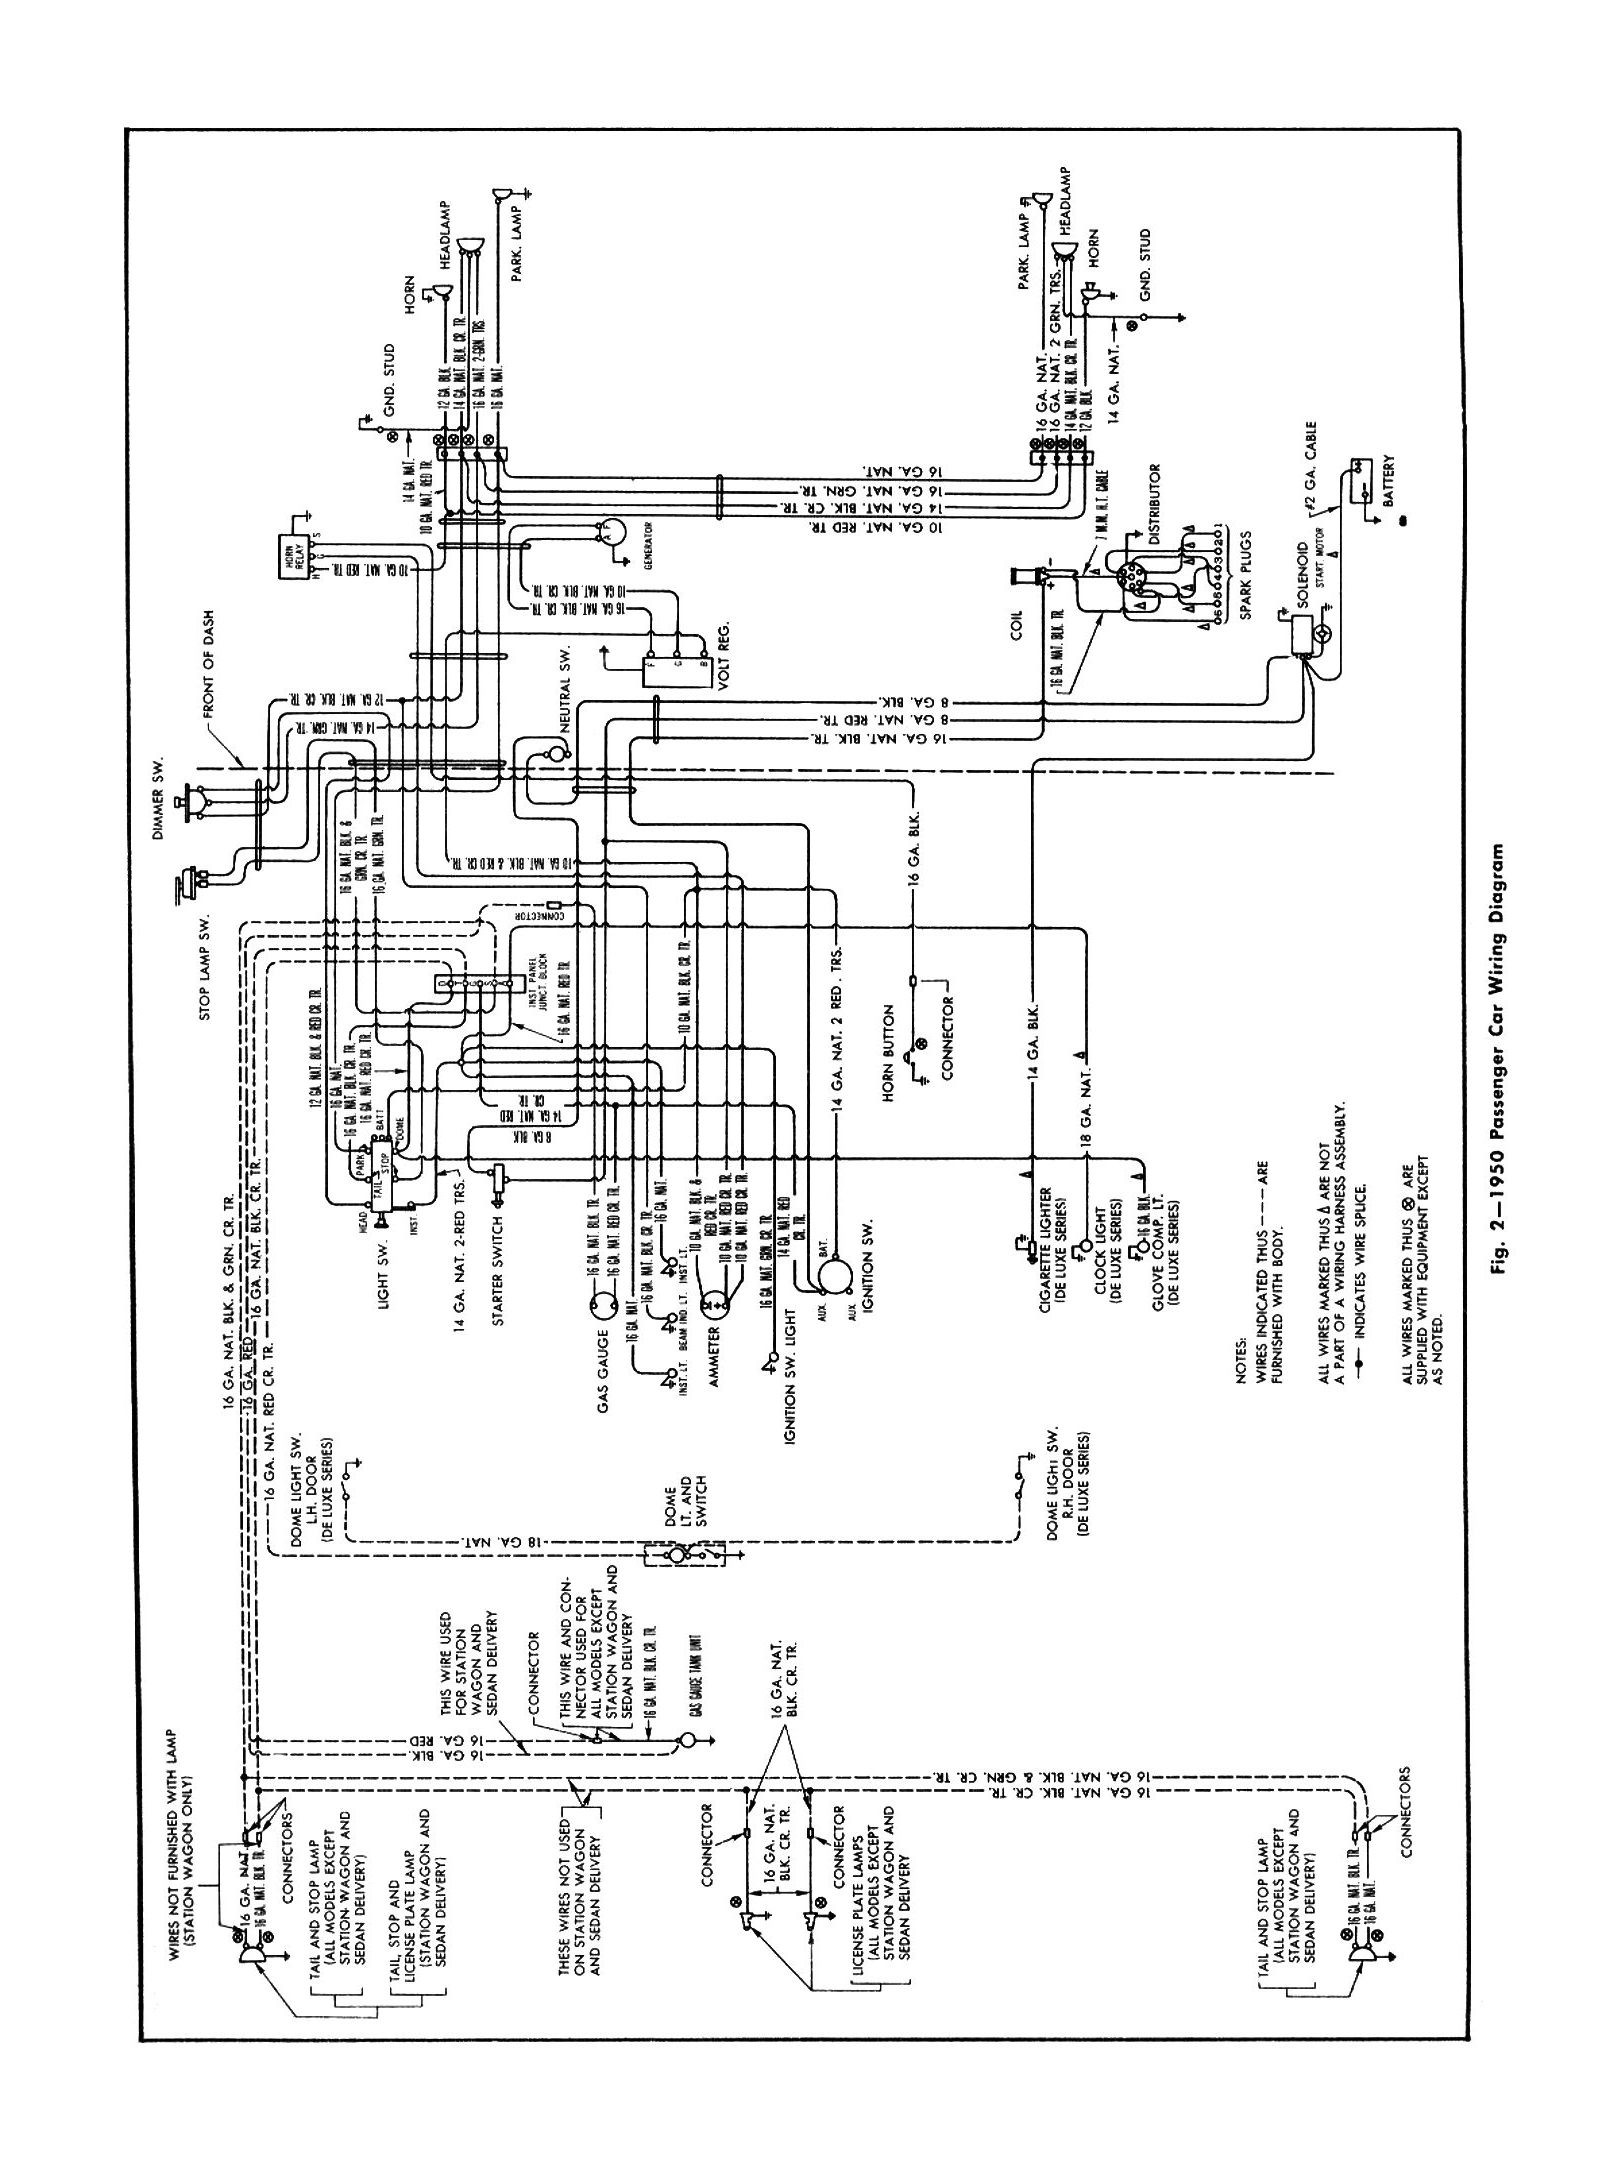 1952 Chevy Truck Turn Signal Wiring Diagram on 1954 cadillac wiring diagram